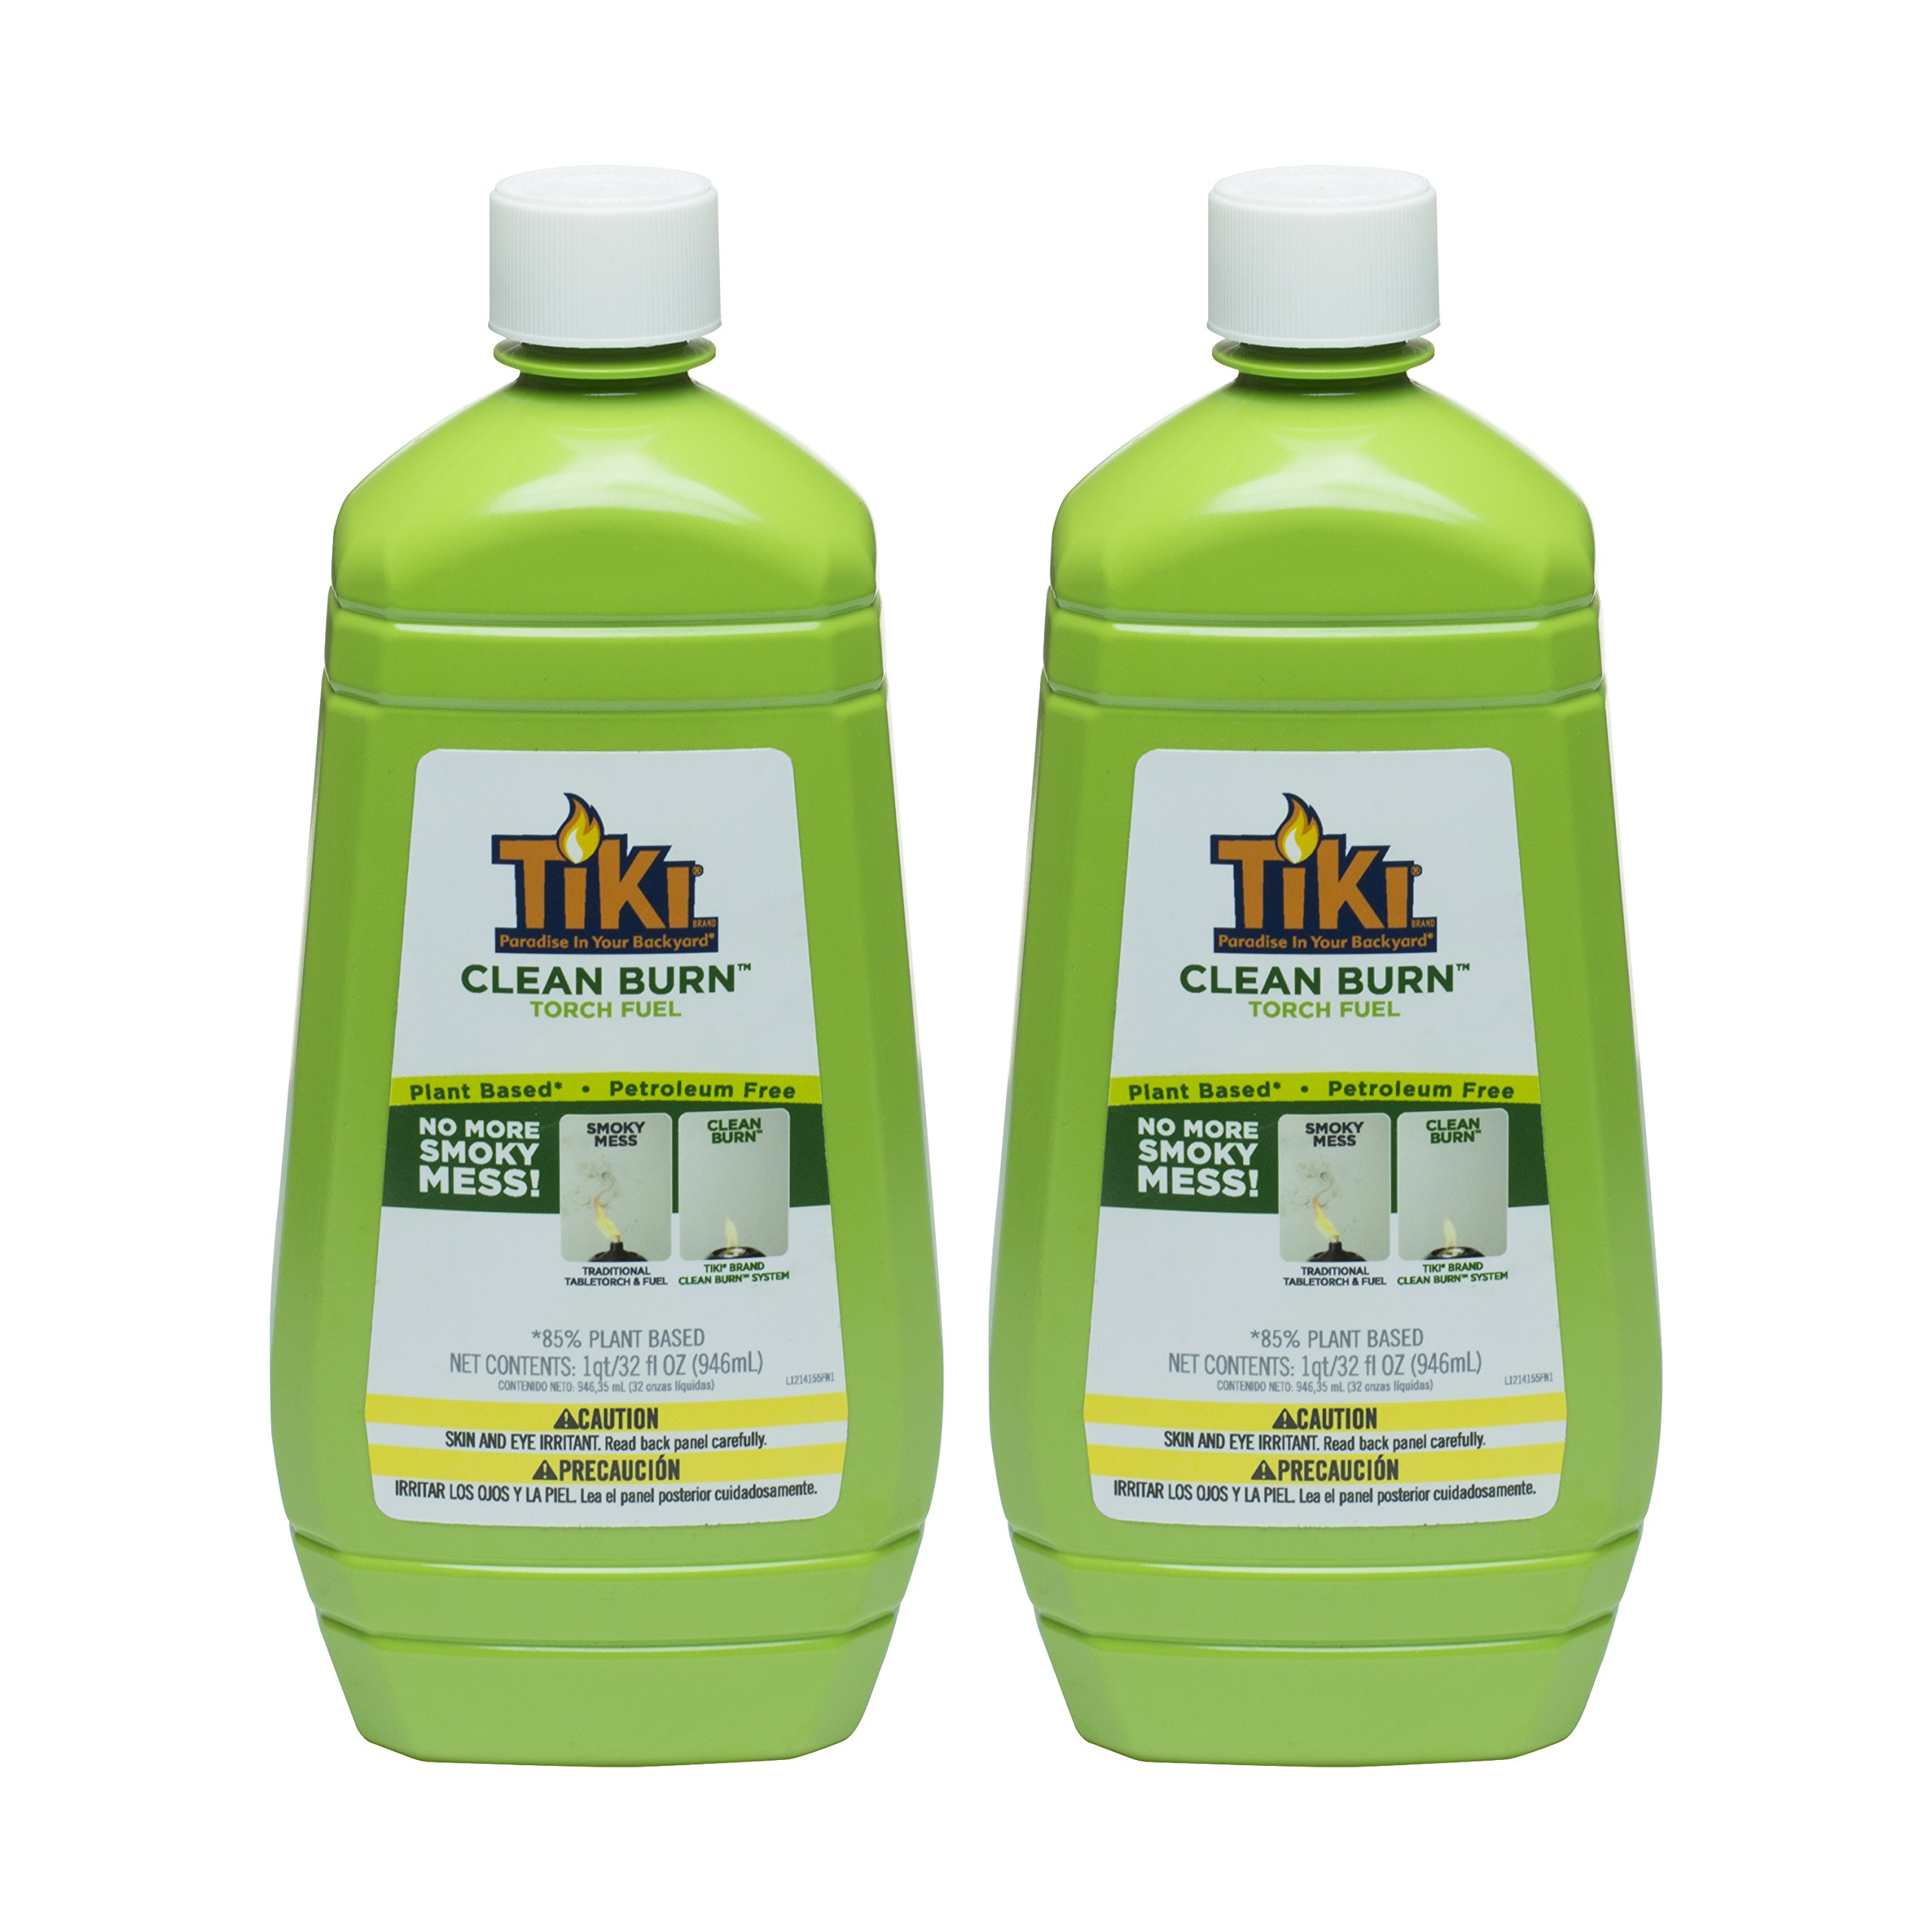 Tiki Brand Clean Burn Torch Fuel, No More Smoky Mess, (2) 32 Ounce Bottles